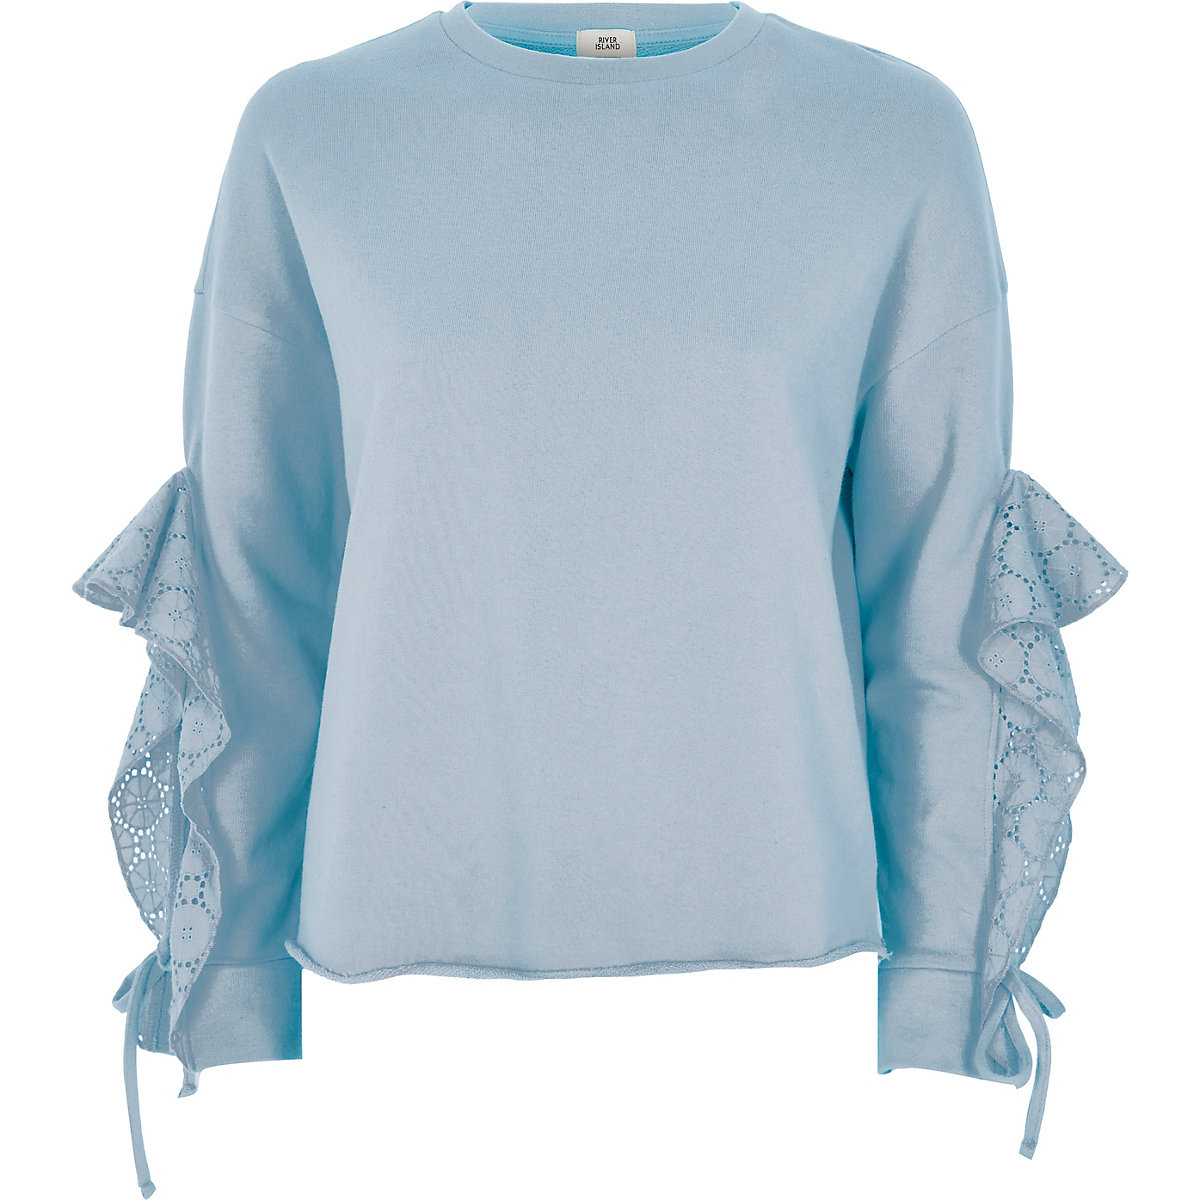 Light blue broderie sleeve detail sweatshirt